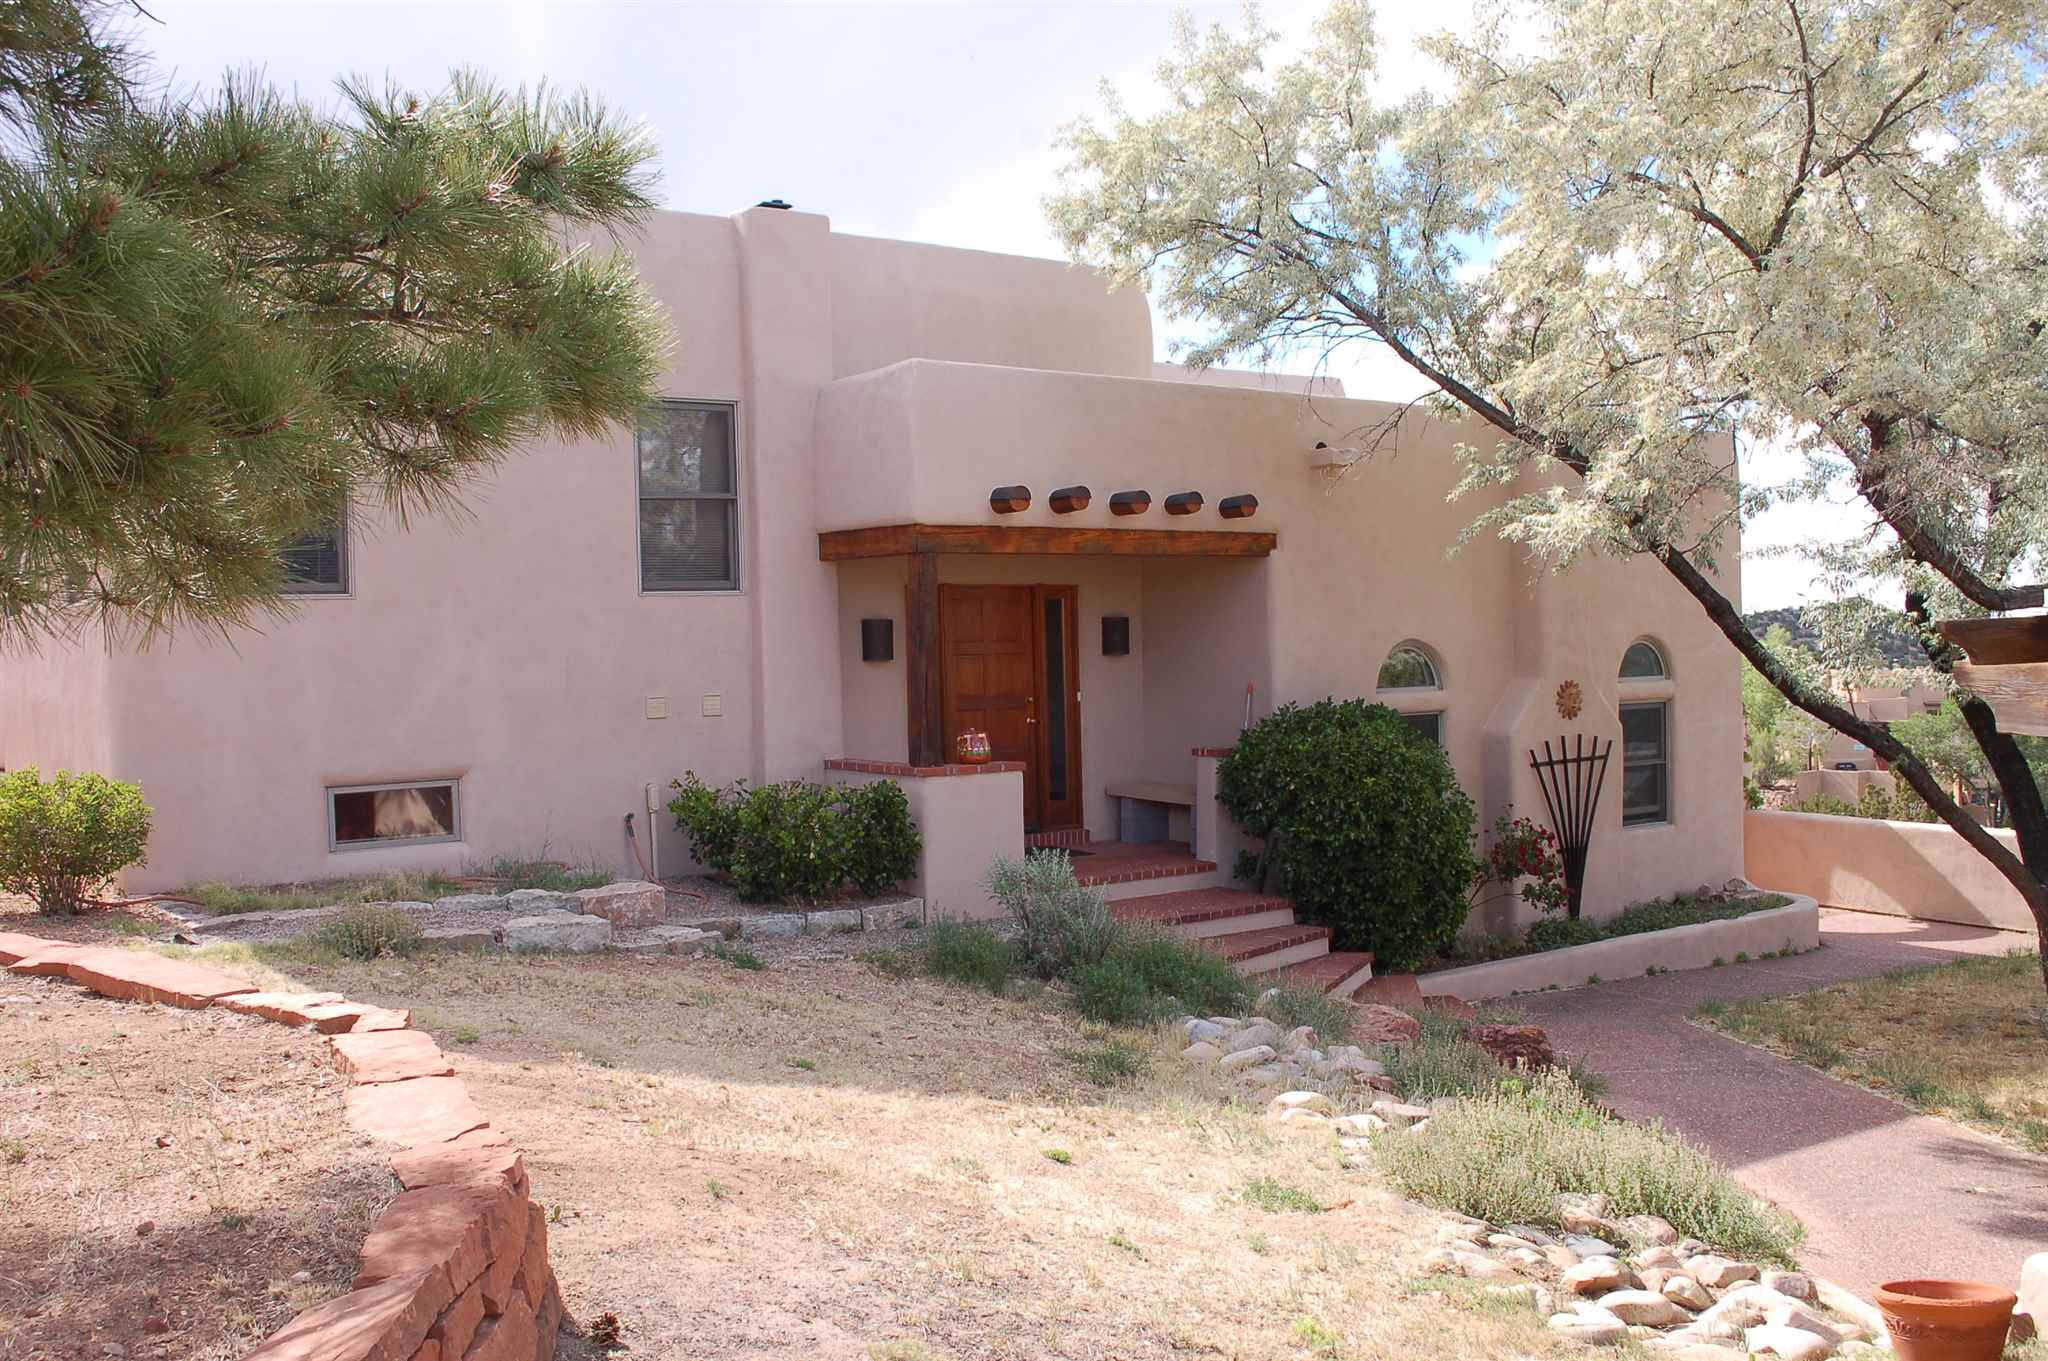 """Have the best of both worlds! Enjoy amazing sunsets and stunning mountain views on 5 private acres of country living only minutes to town. Three modern, energy efficient, multi-use structures include this custom, Santa Fe Pueblo style 3 Bedroom, 3 Bath home with office featuring vigas, beams, arched doorways throughout, Saltillo tile floors, and custom wood windows. The living room has 14 ft. high ceilings, a wood burning fireplace, and lighted nichos.  A rented guest house/casita with """"tenant in place"""" brings income as a bonus. In addition, is a detached heated over sized 2 car garage with storage and a heated studio/workshop (which can store more cars); perfect for the car enthusiast, artist, carpenter, or contractor. There is potentially parking up to 6 cars in the garage and studio, with up to 4 cars in the driveway. The master bedroom has a private view deck, beamed ceilings, fireplace, and built in bookshelves. The master bath has double sinks, and a 6 ft. Whirlpool tub for your complete relaxation. There is a steam shower, mud room, and separate laundry. Gardens of native landscaping are accented by rock, brick walkways and stucco walls. A 700 gallon rain water catchment system is connected to the garden water hydrant. This can also be a horse property for up to 4 horses so bring the horses. Convenient to 599 for Los Alamos commuters, shopping at the malls, and dining at Santa Fe's best restaurants."""